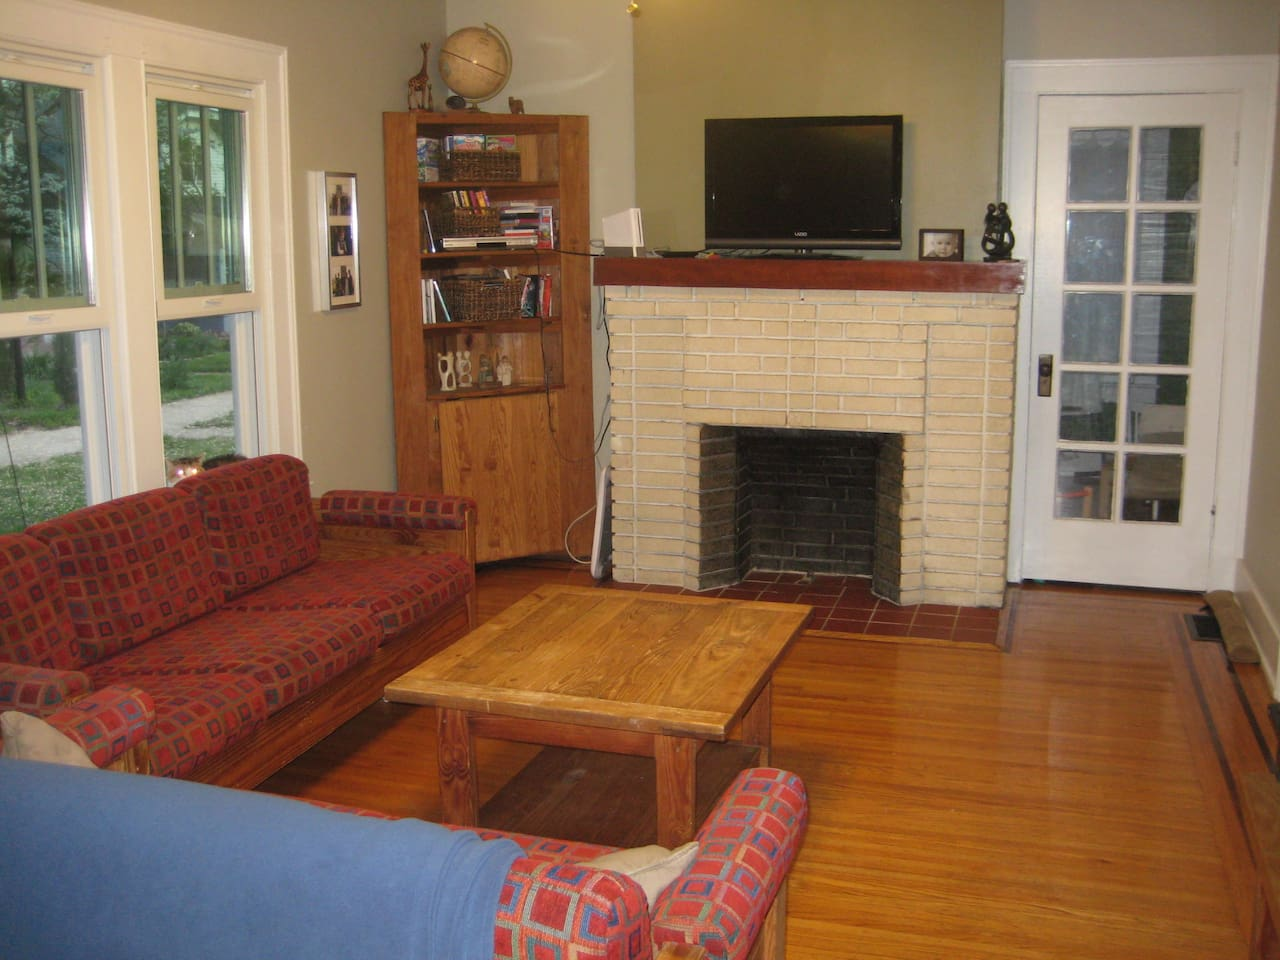 ky derby rental off bardstown road houses for rent in louisville